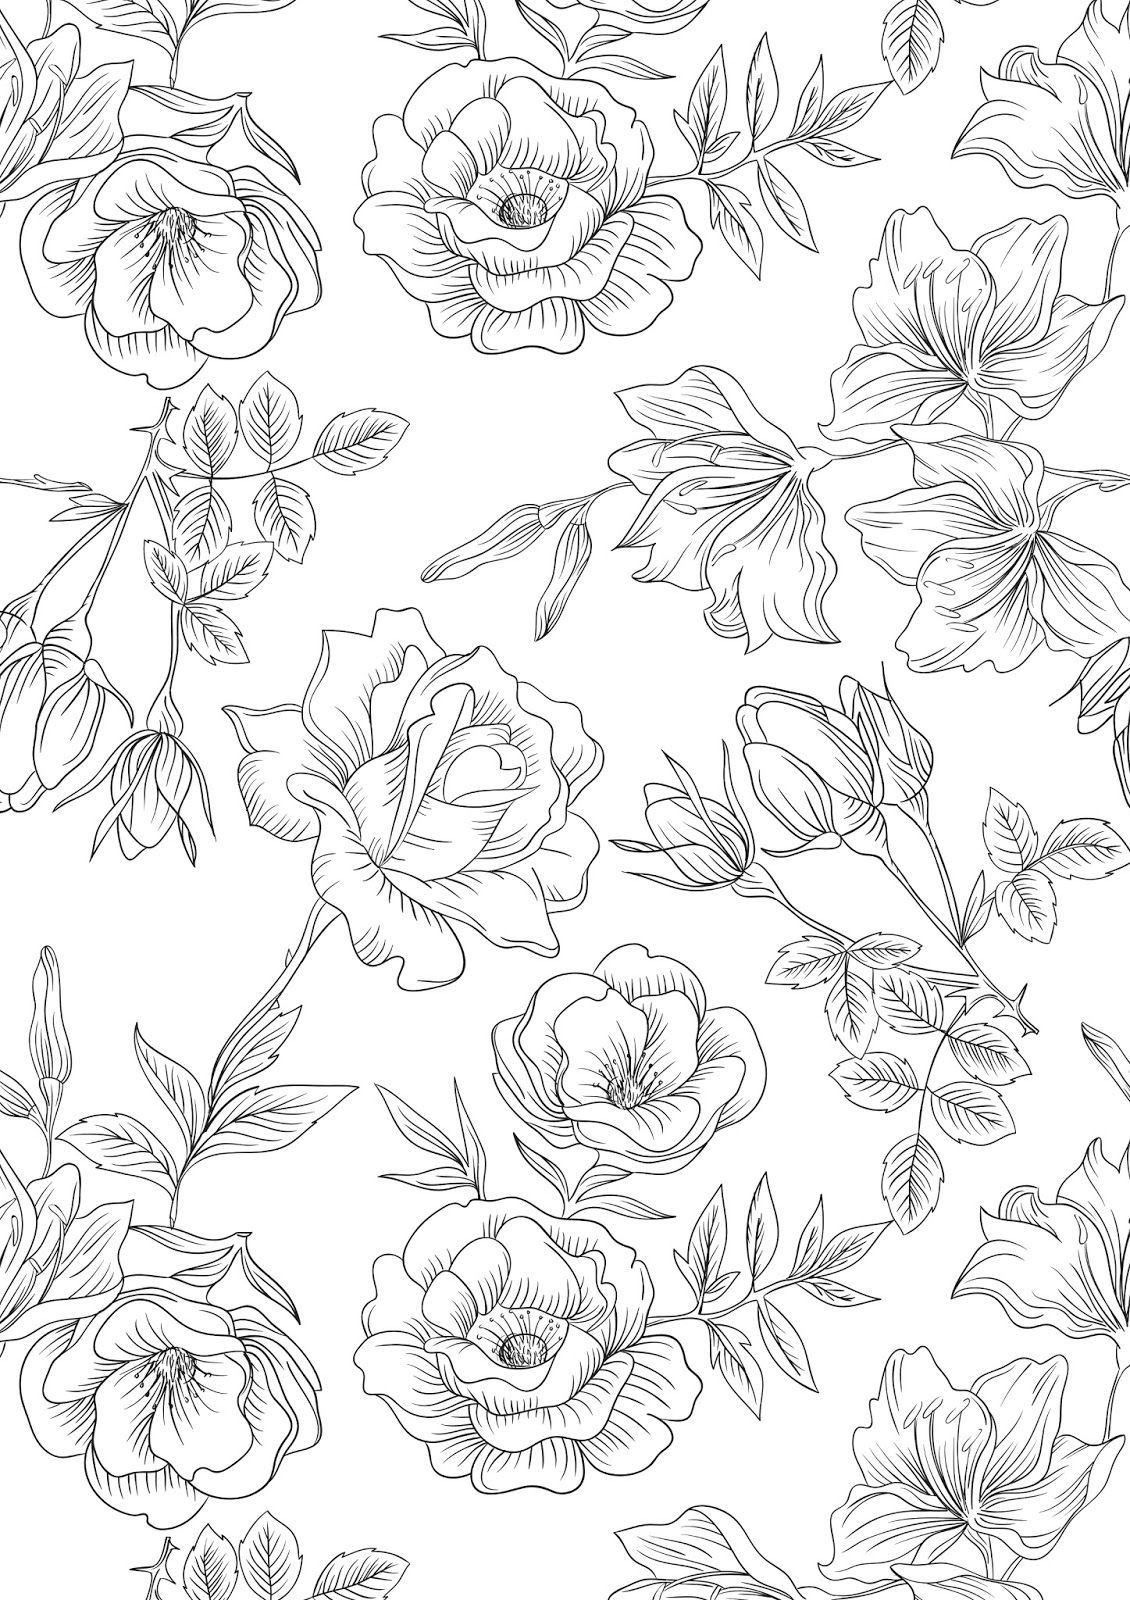 Mothers Day Flowers Coloring Pages Free Large Images Flower Coloring Pages Printable Flower Coloring Pages Spring Coloring Pages